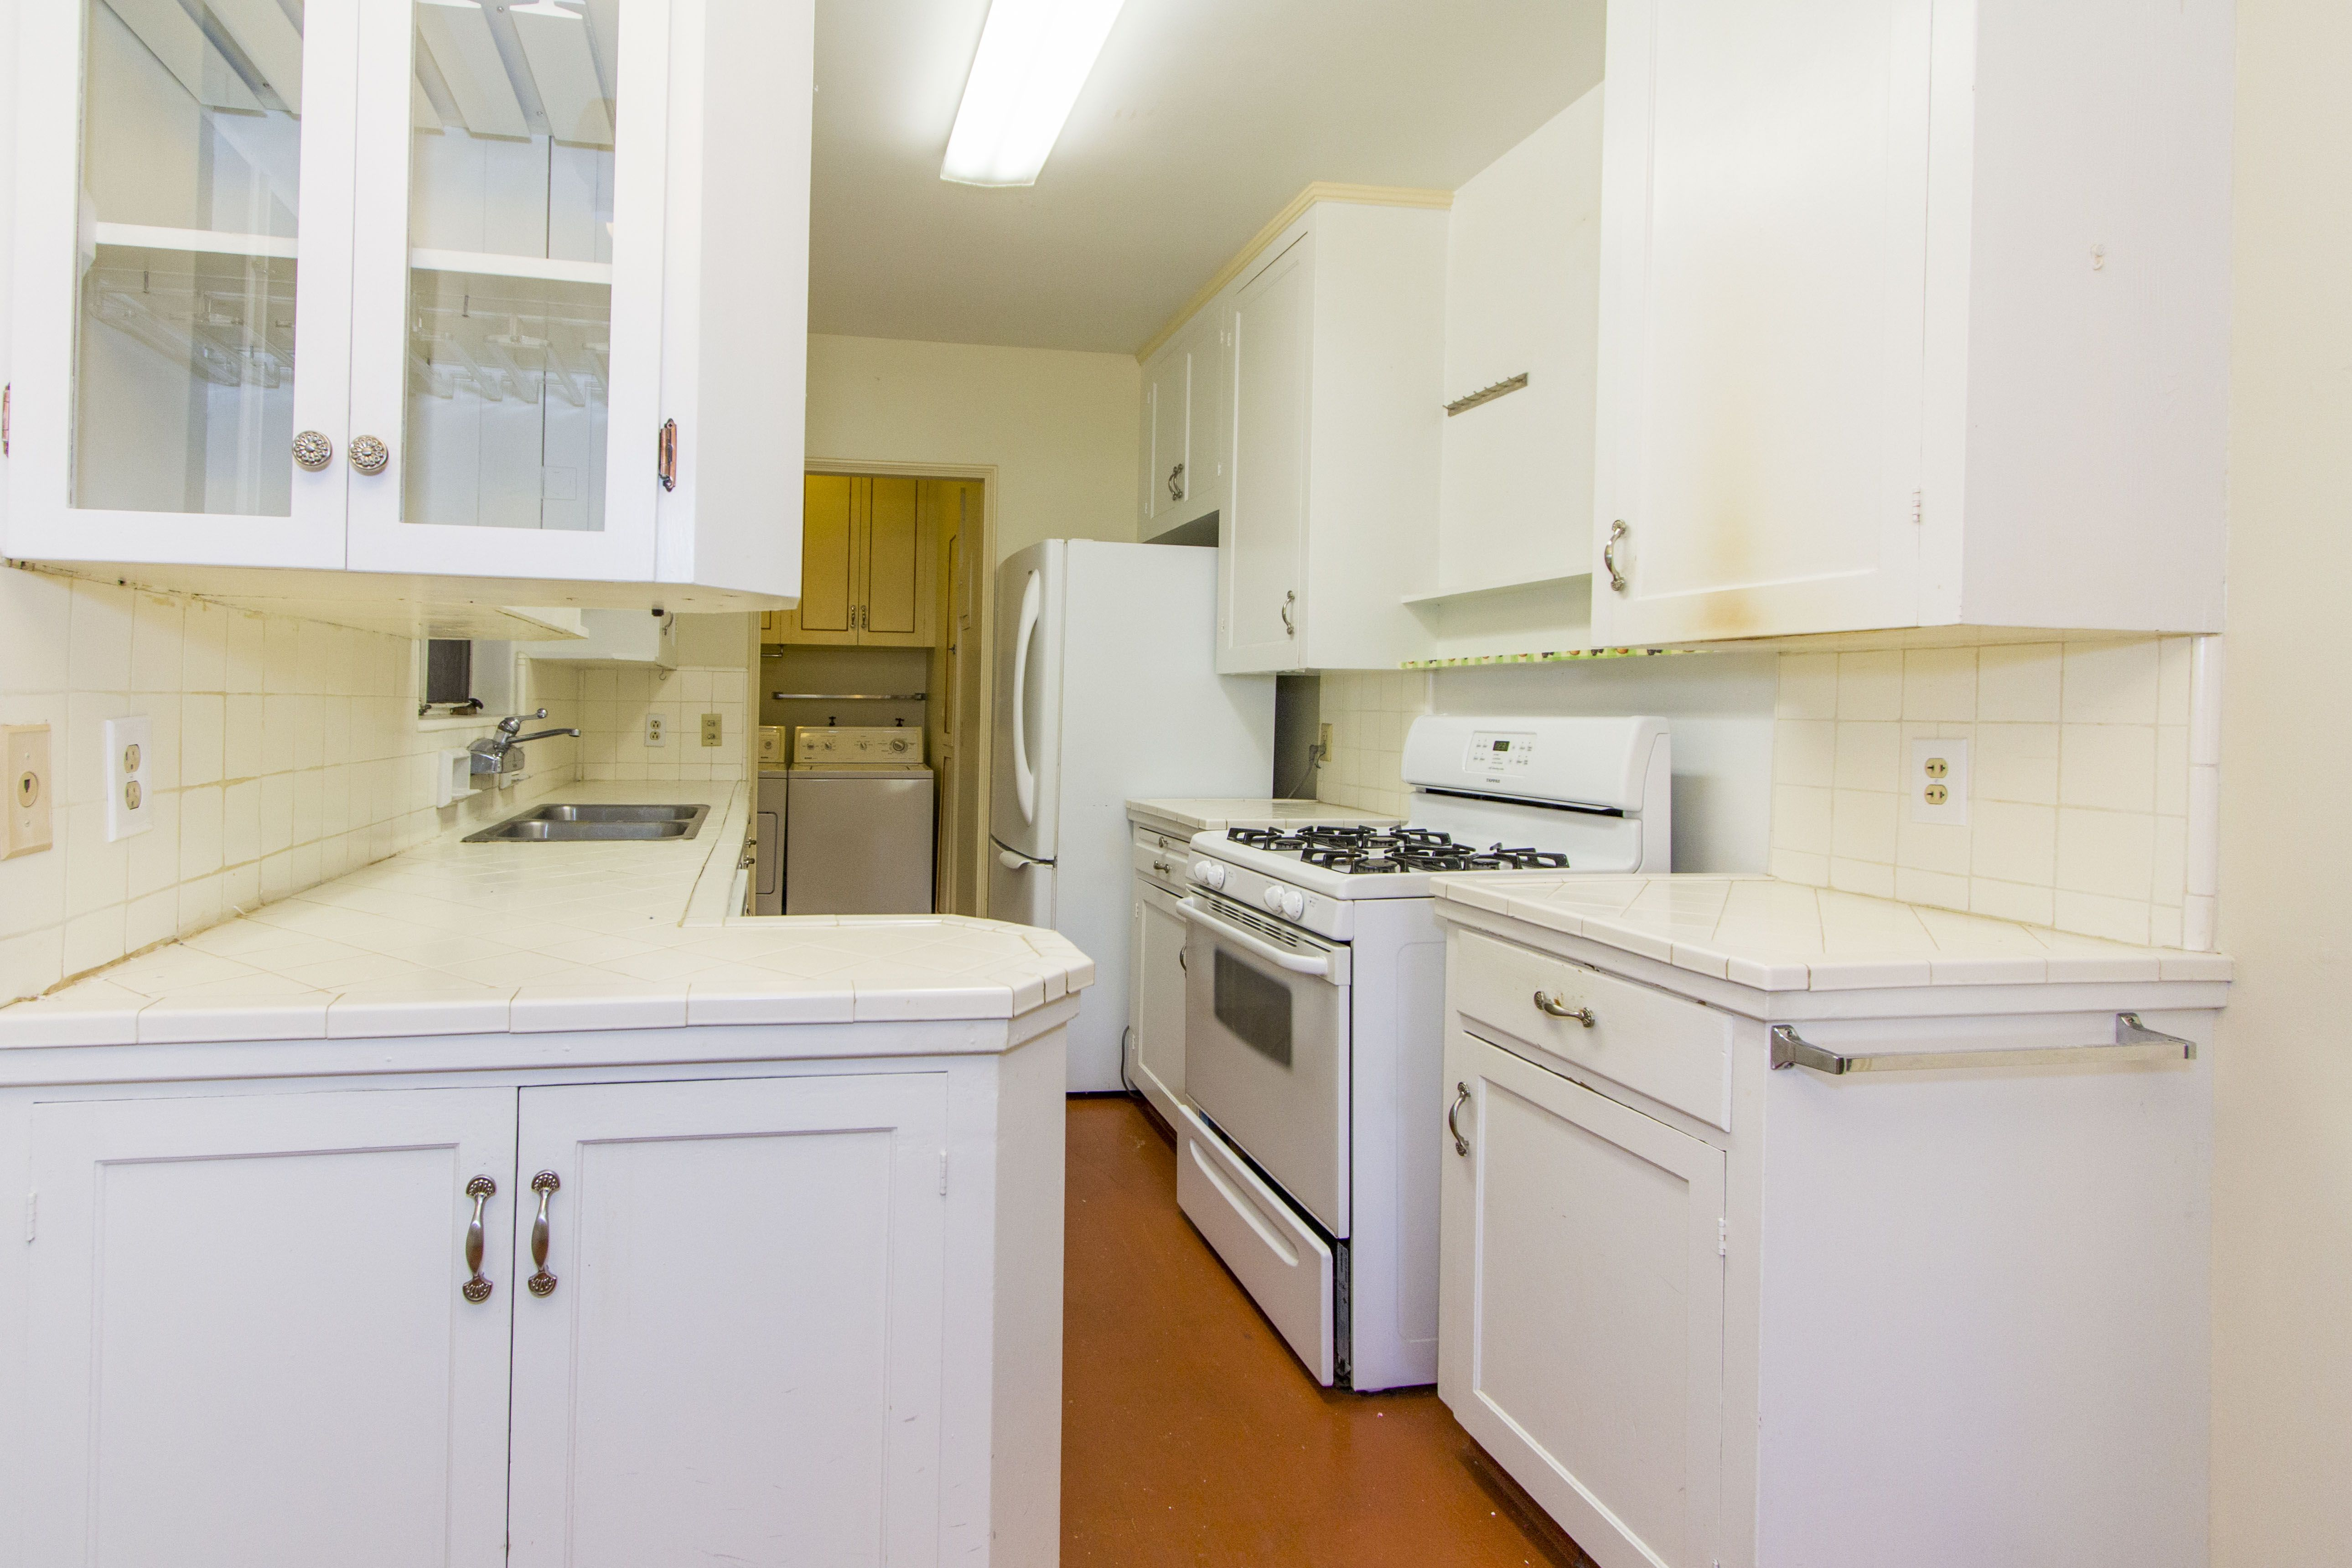 White Vintage Kitchen 2220 E Grant Rd House For Sale In Tucson